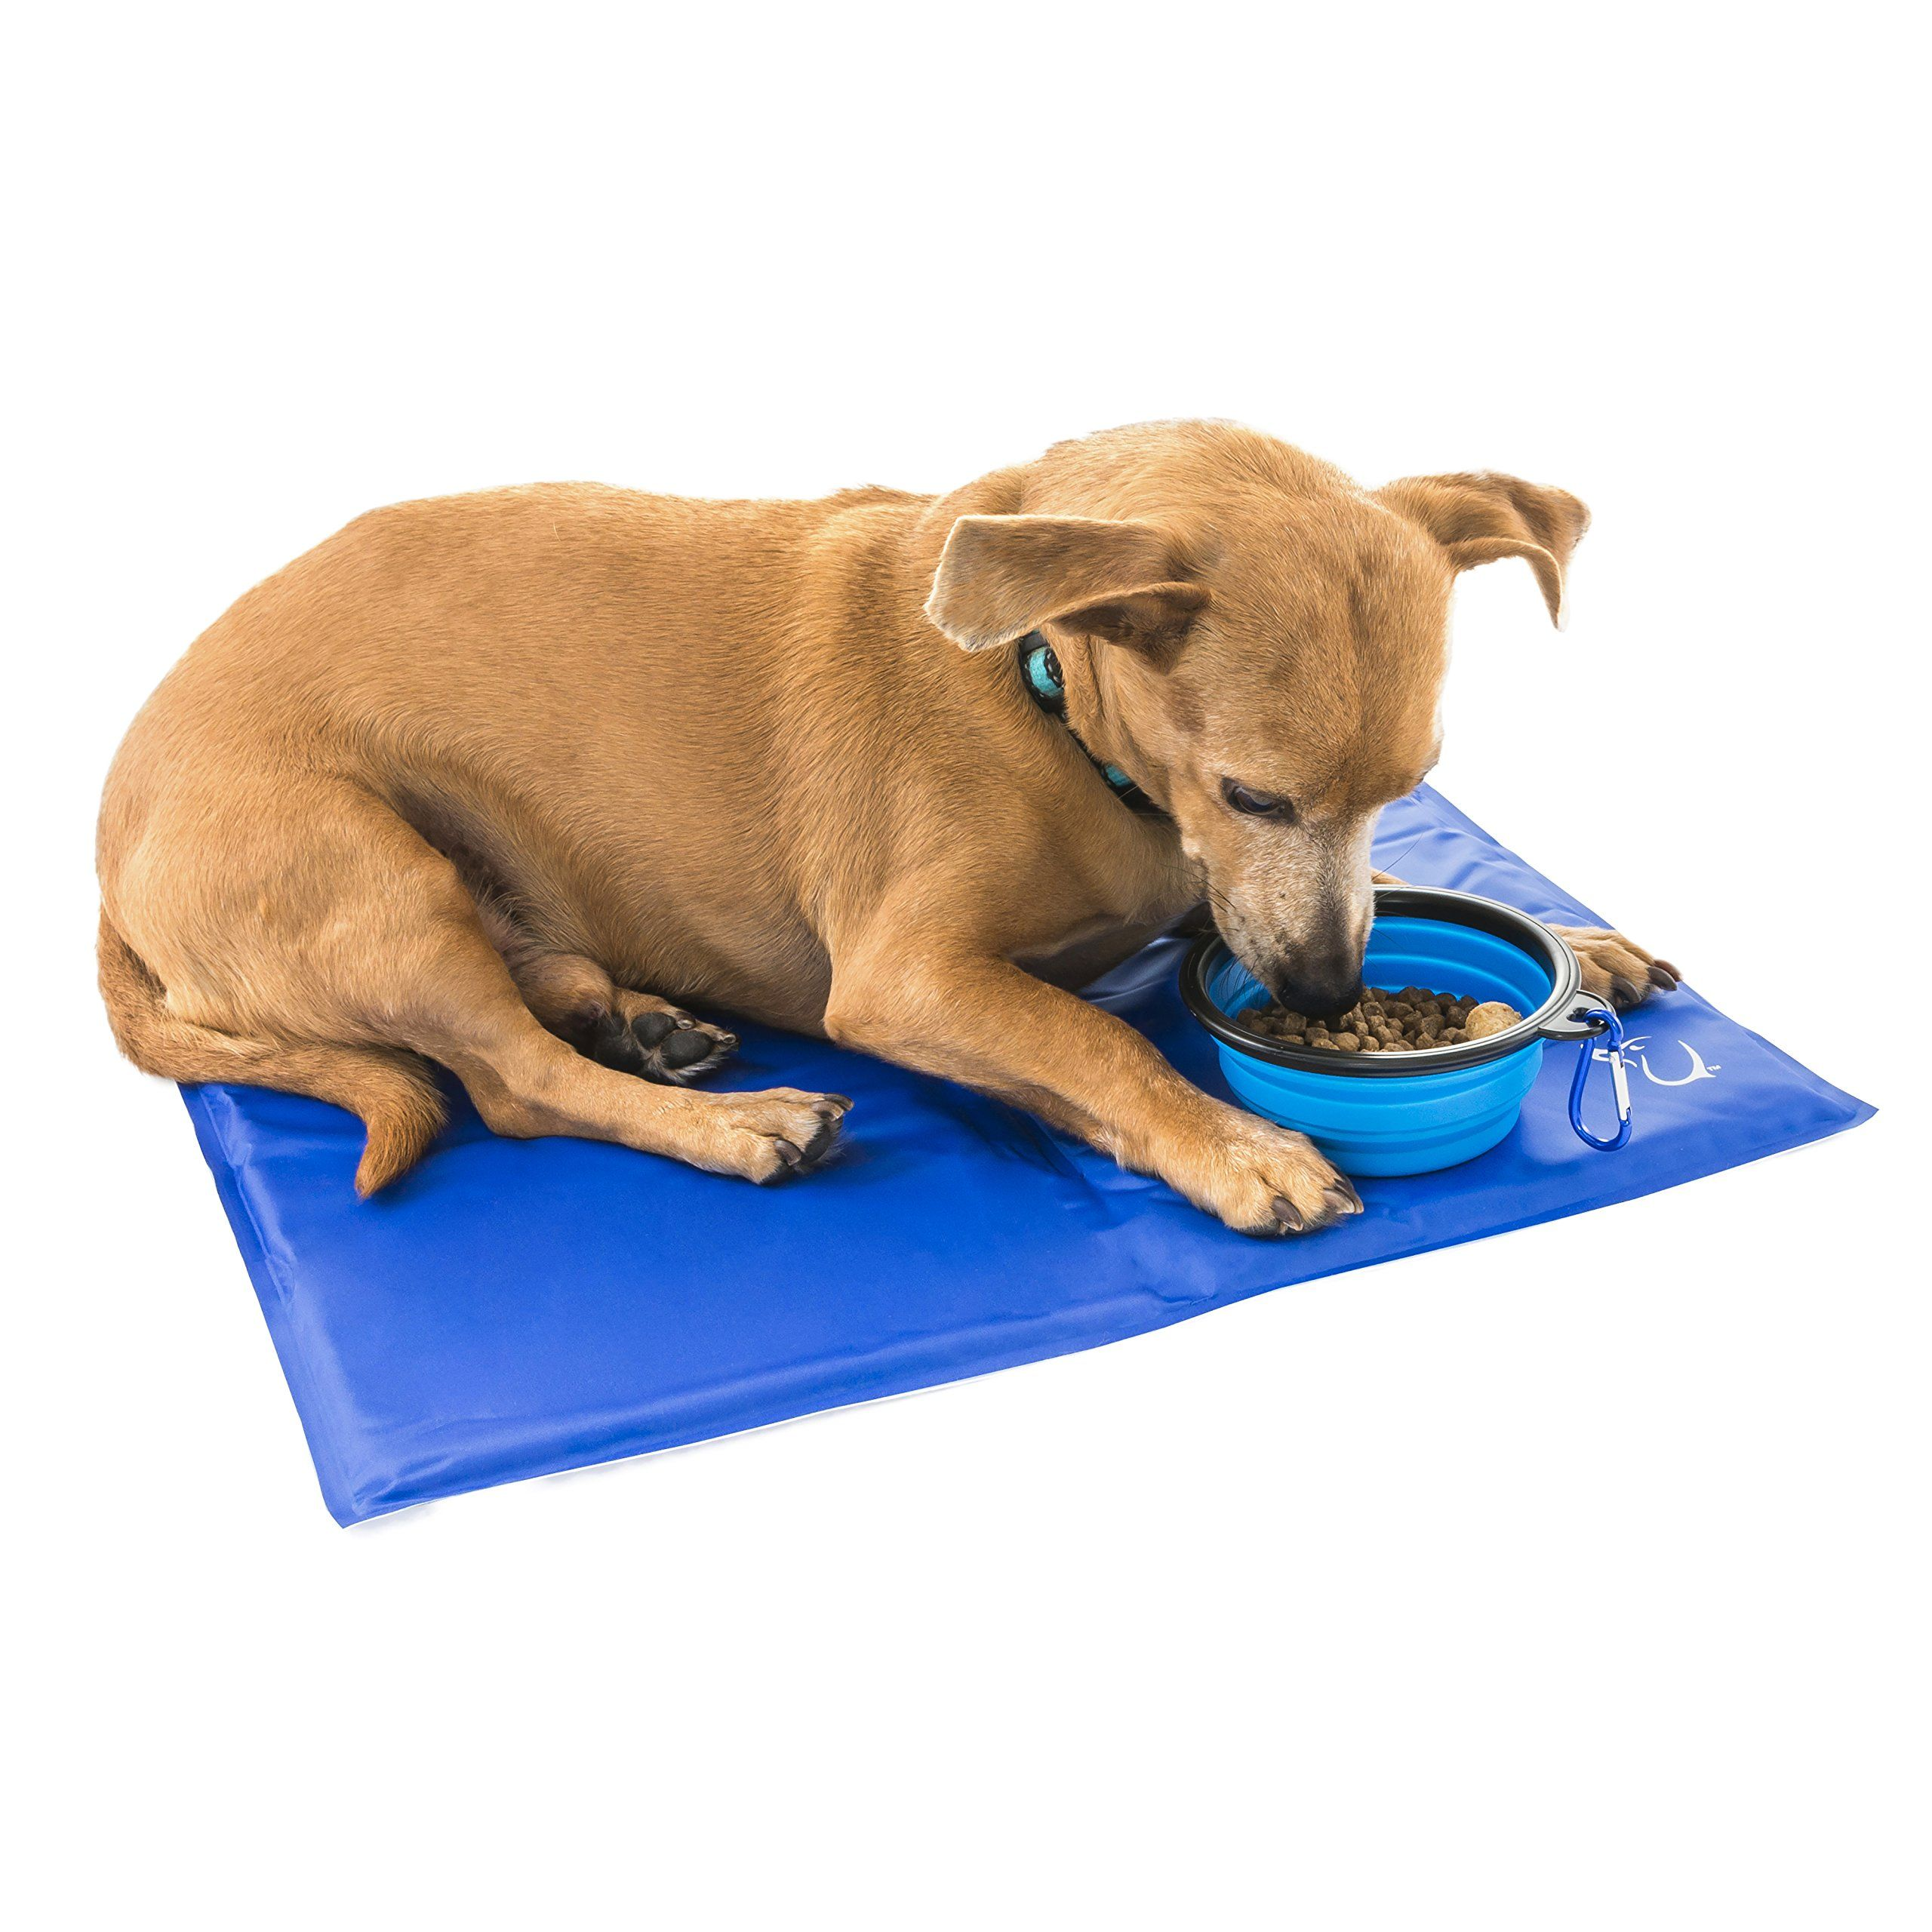 Unleashed Pets Self Cooling Pressure Activated Pet Cooling Gel Pad